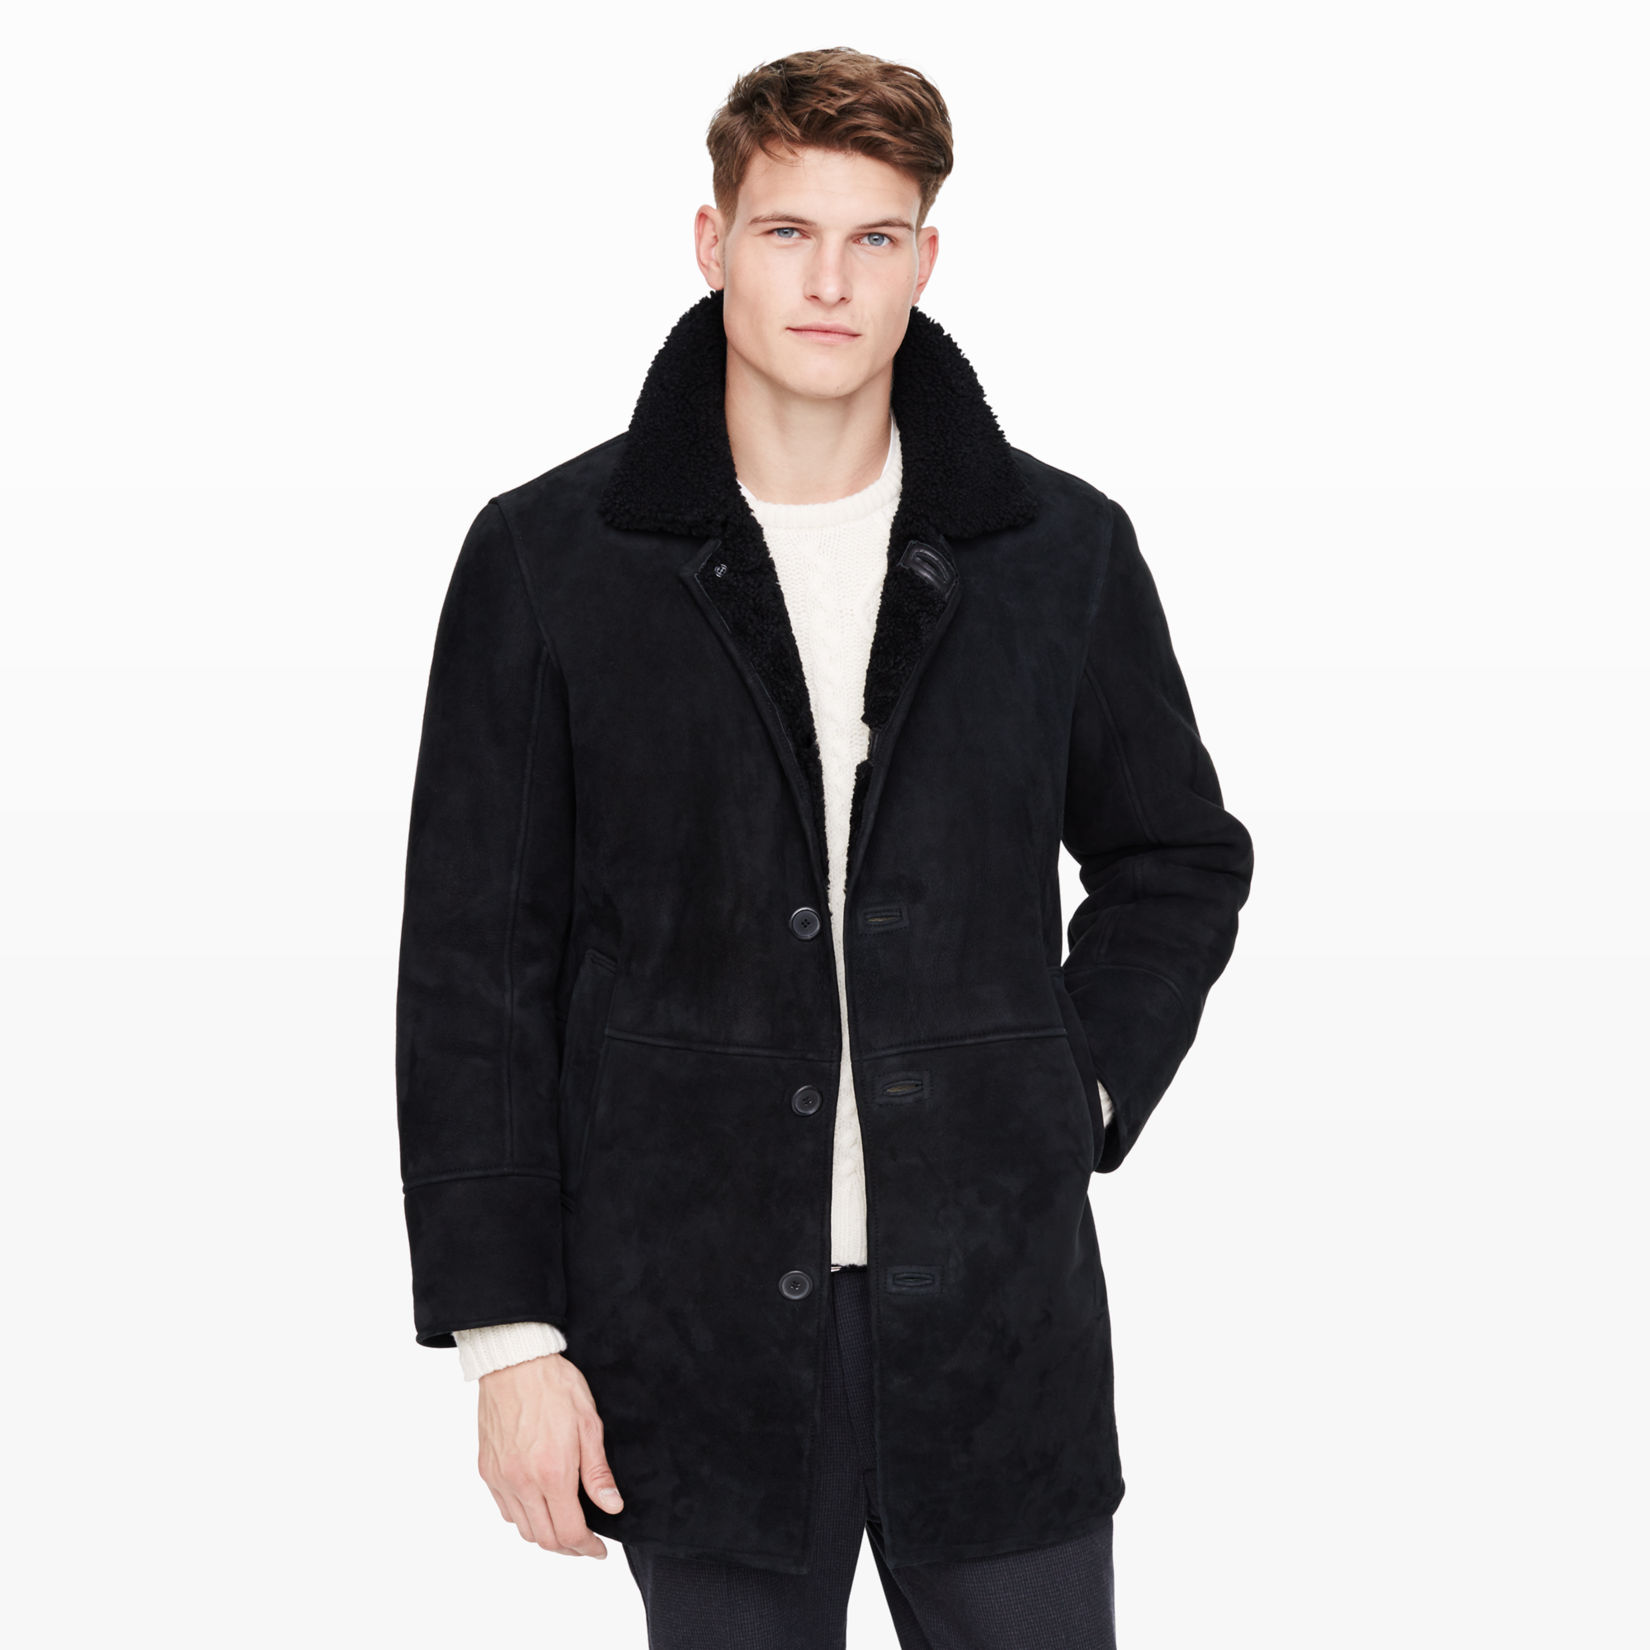 men outerwear shearling coat club monaco #0: p lifestyle flyout main iv vrzqz1 wid 1650 hei 1650 fit fit 1